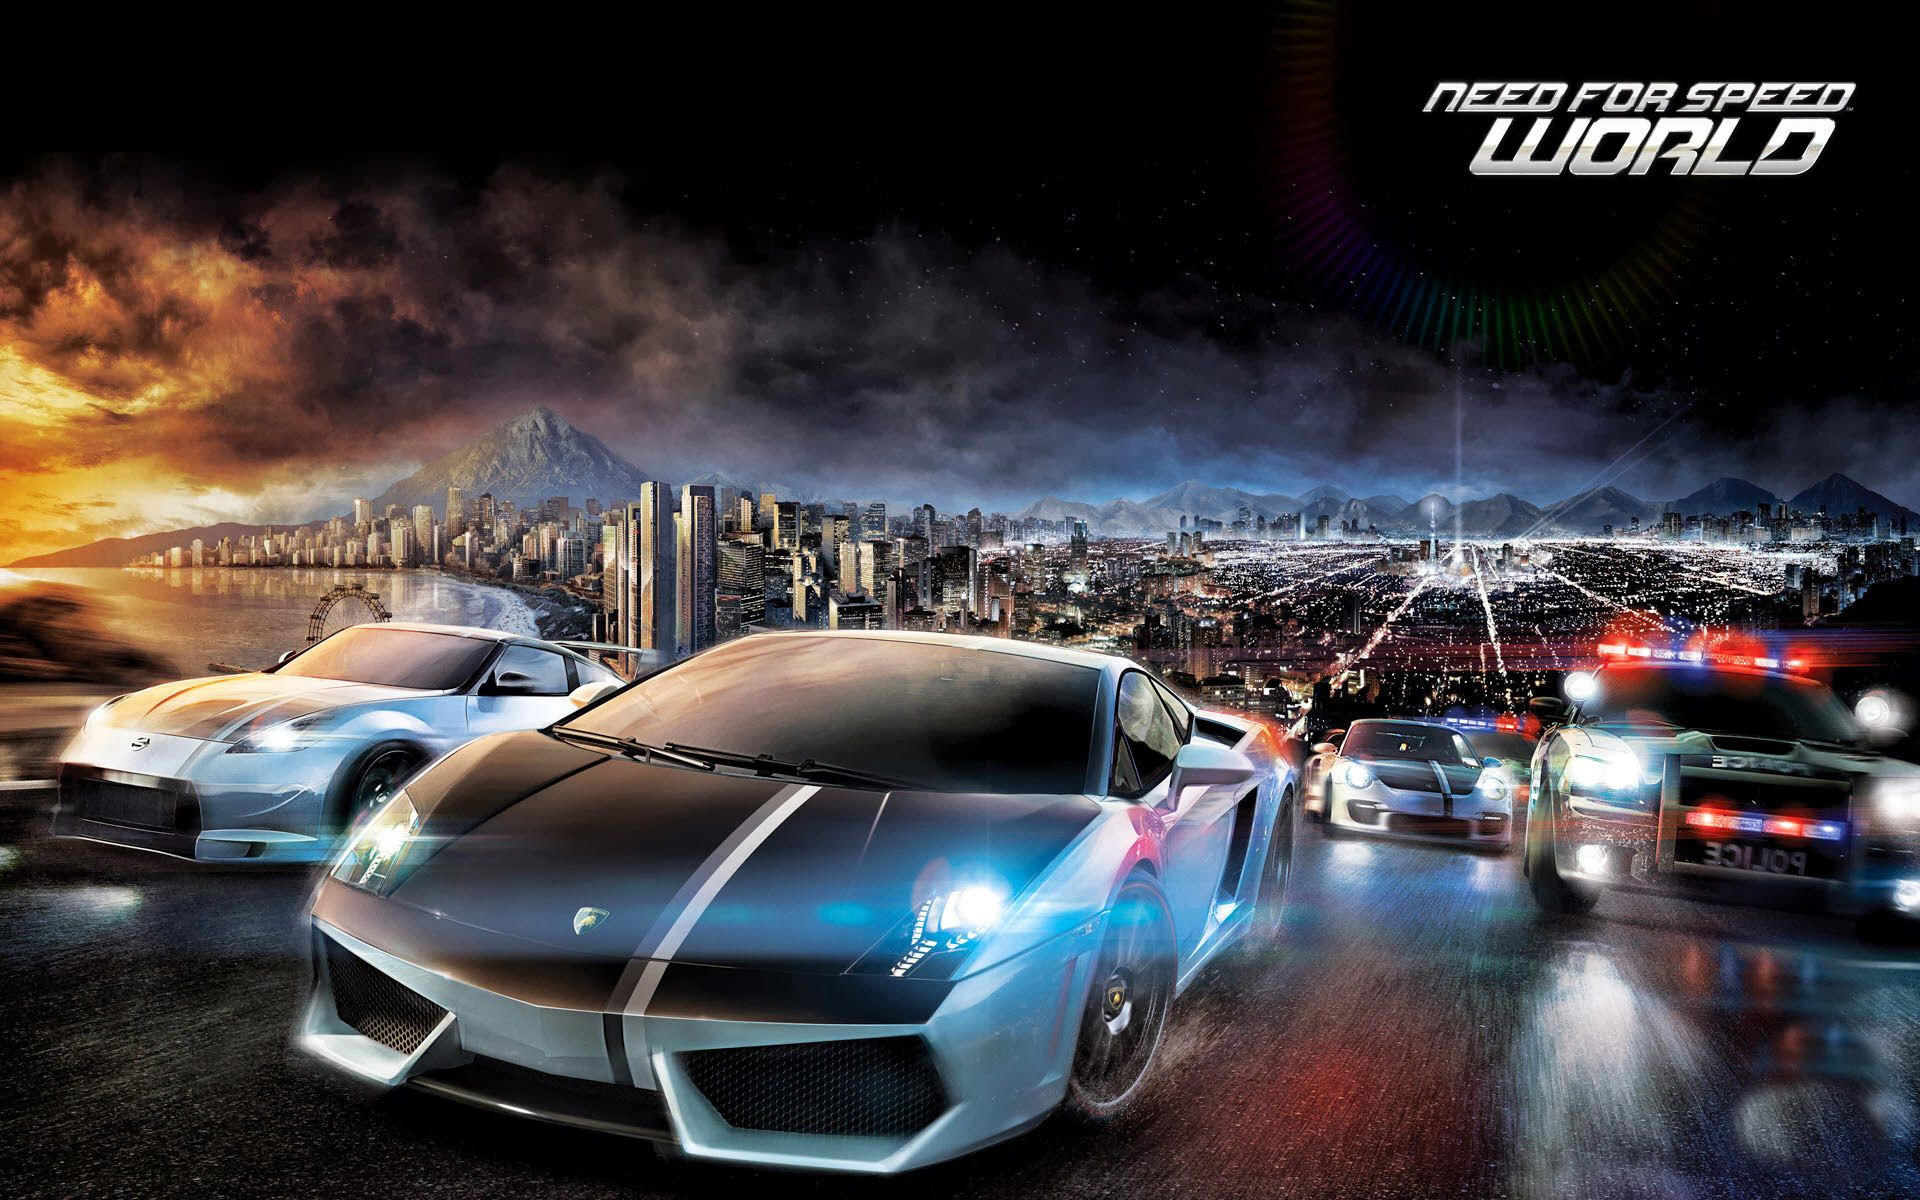 00f2010d8c8b292aeb174ad65d40b7d4 Outstanding Bugatti Veyron Need for Speed Underground 2 Cars Trend